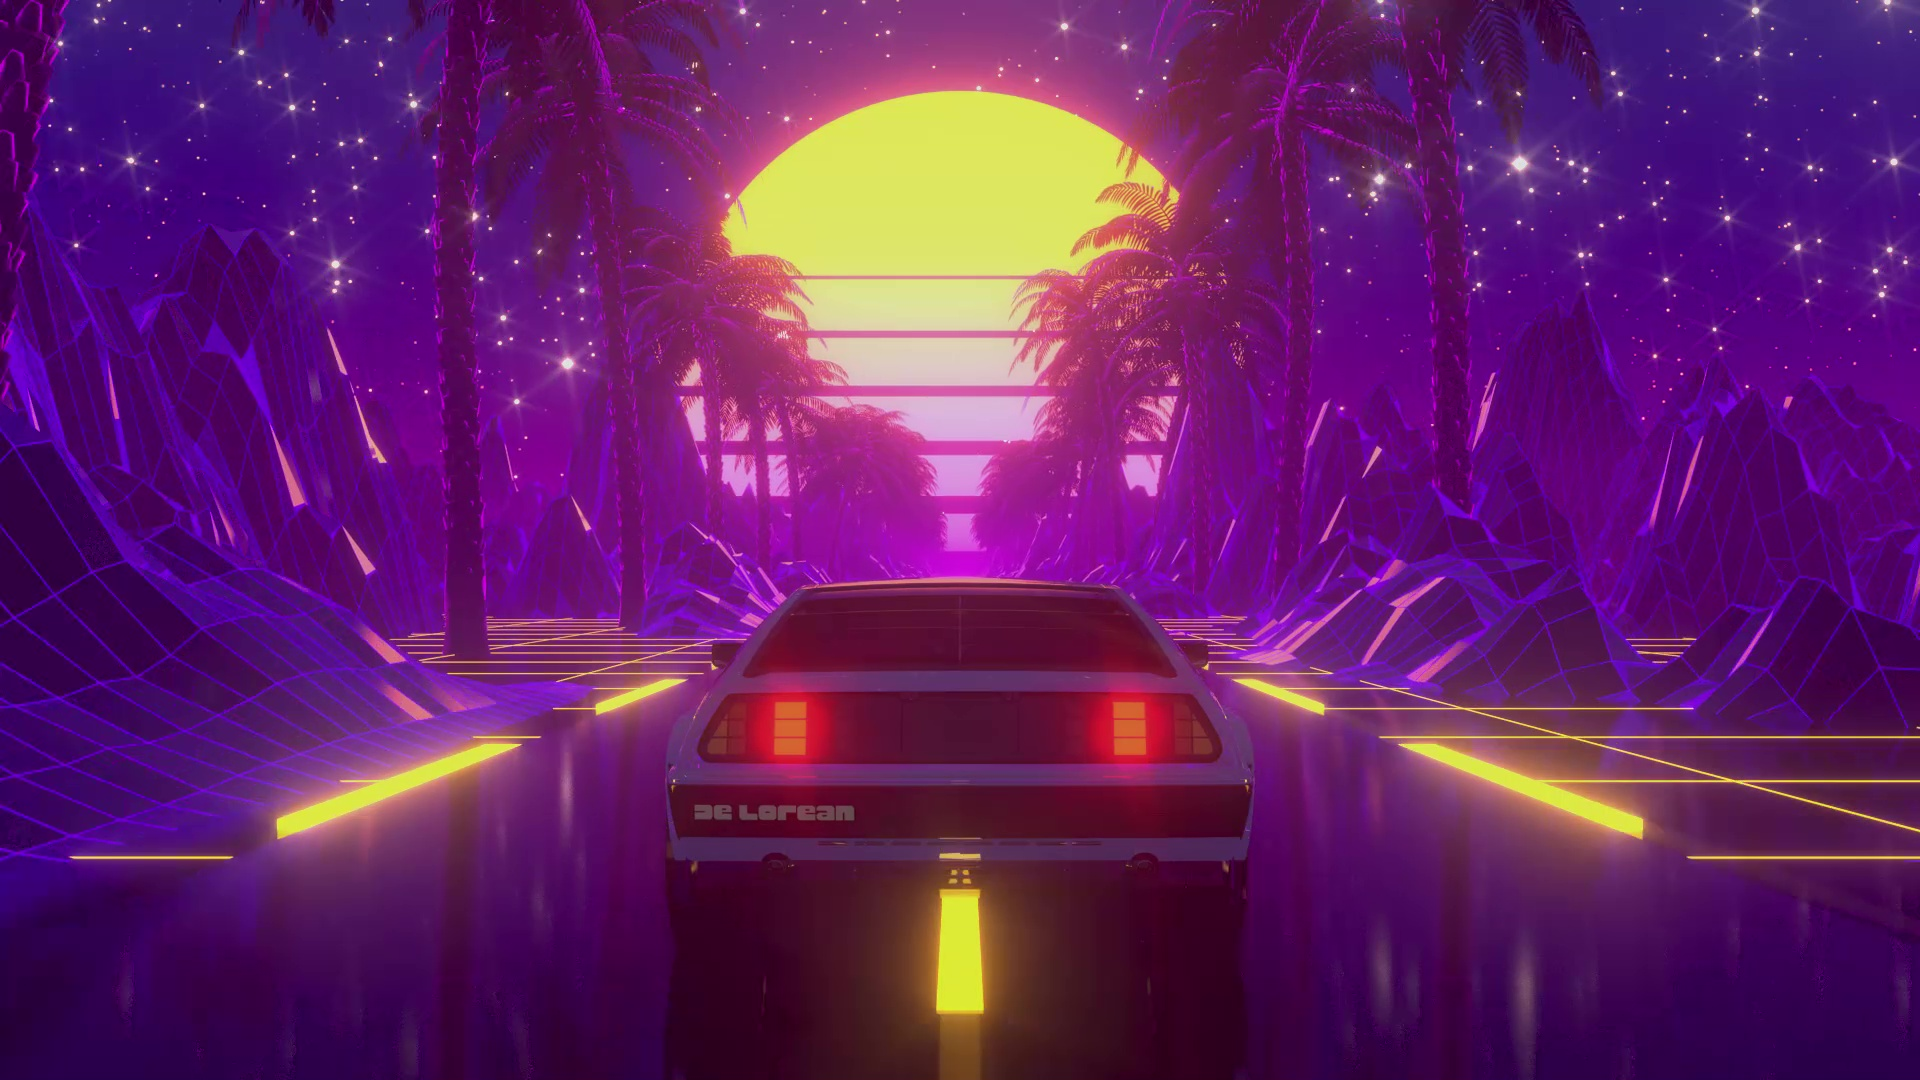 Lively anime live wallpaper is a powerful app where you can find incredible live. Delorean by VISUALDON (loop) Live Wallpaper - Live Wallpaper